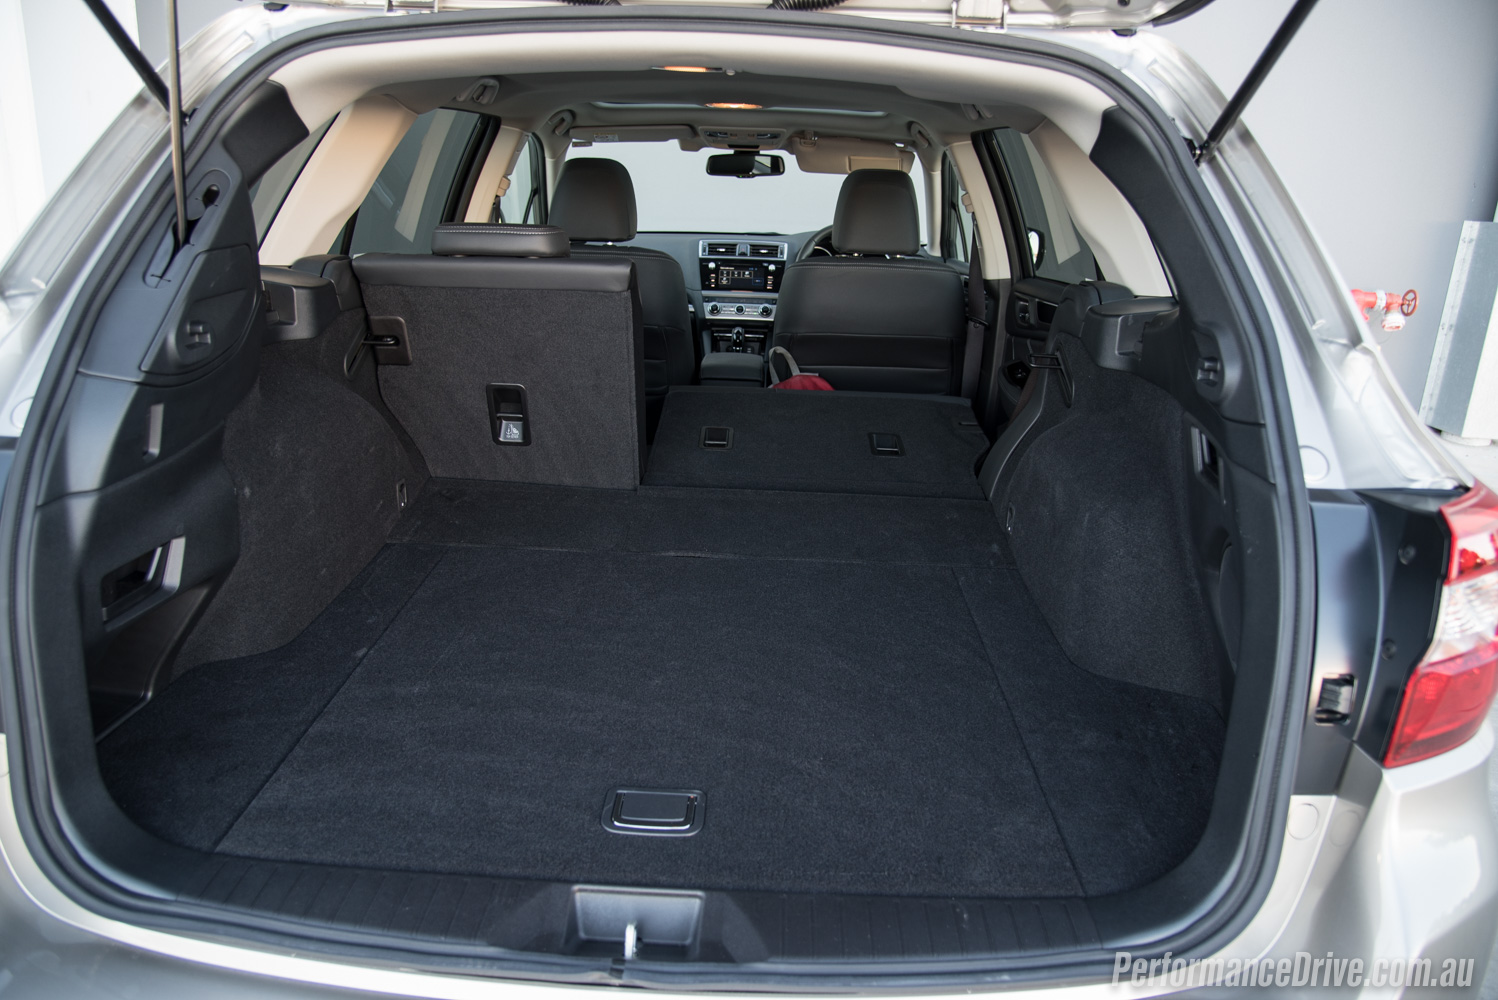 2016 subaru outback 3 6r cargo space. Black Bedroom Furniture Sets. Home Design Ideas